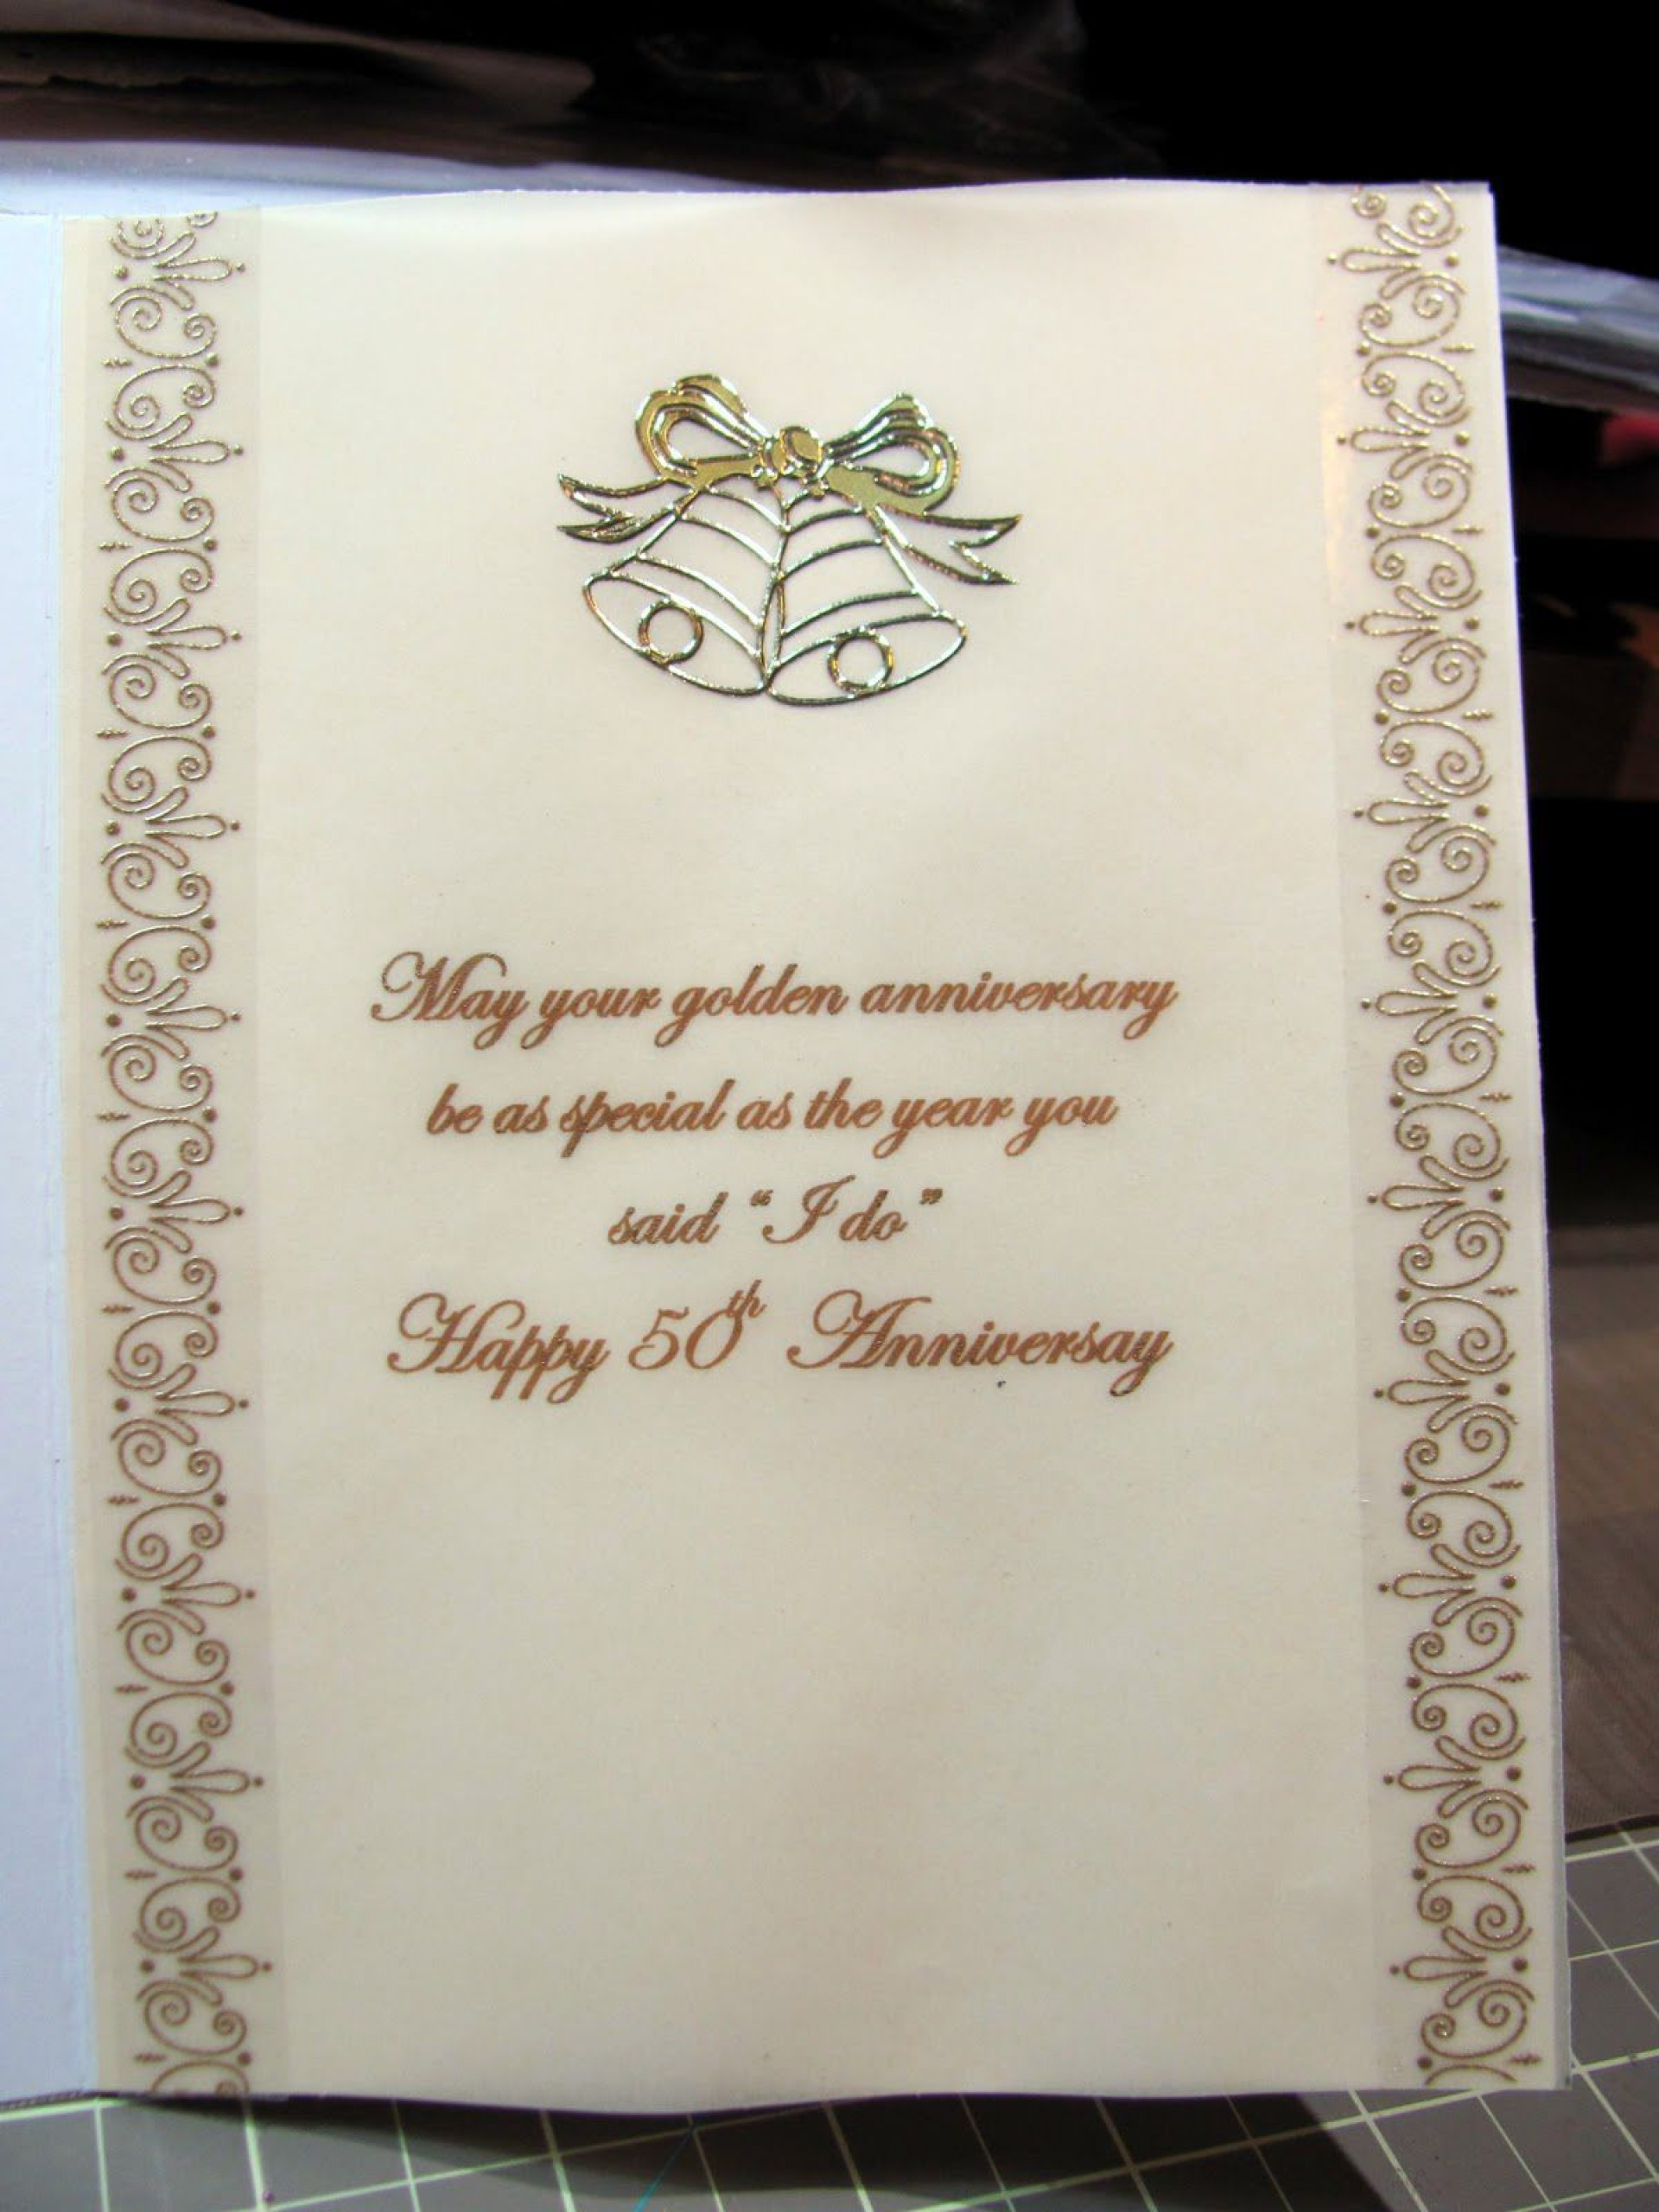 000 Awful 50th Anniversary Invitation Wording Sample Concept  Samples Wedding Card1920